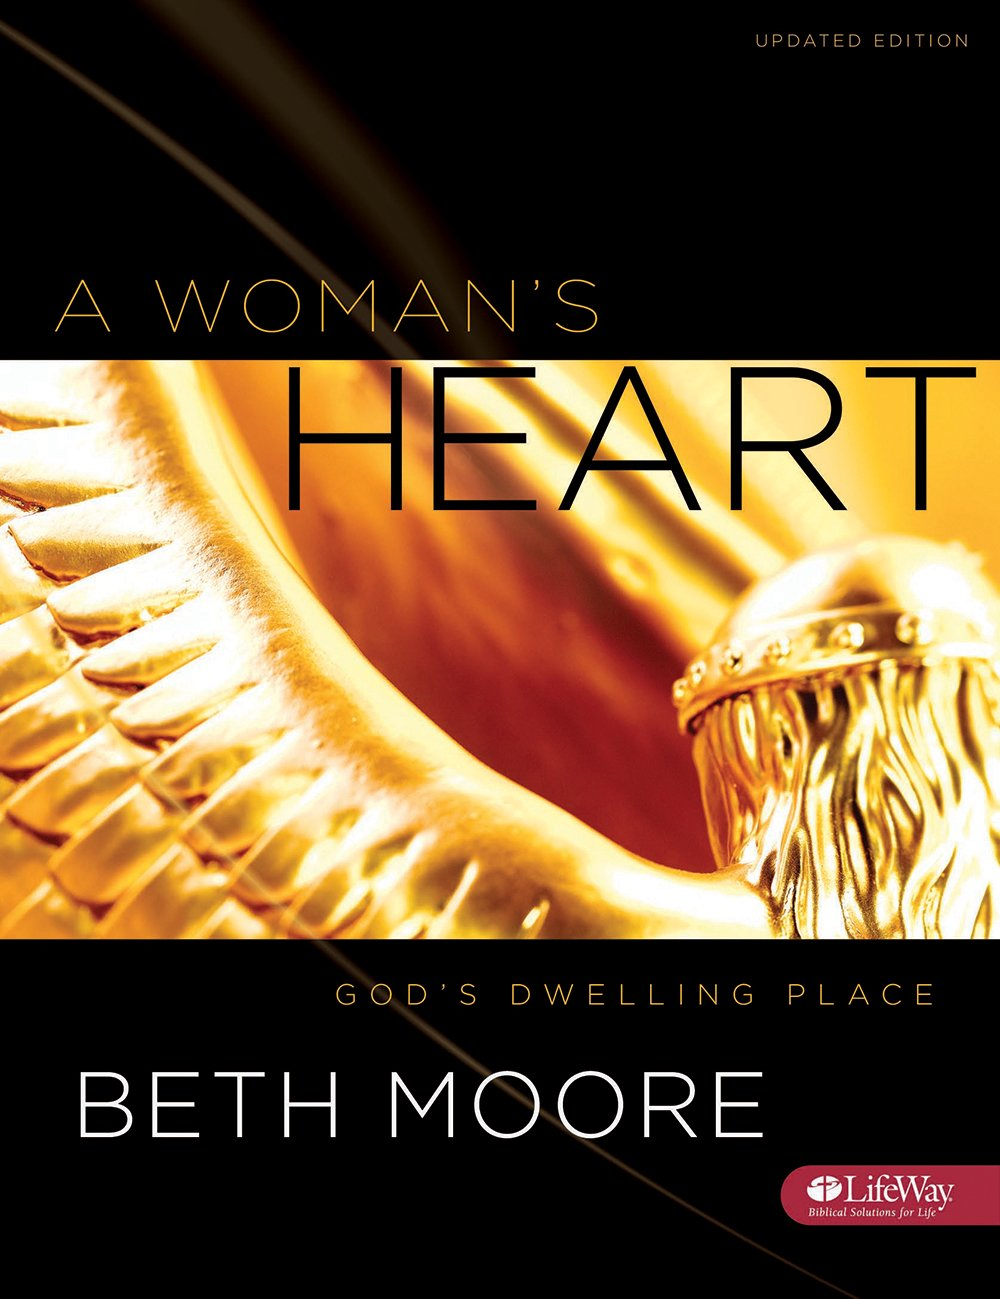 A Woman's Heart - Bible Study Book: God's Dwelling Place: Beth Moore:  9781415855812: Amazon.com: Books